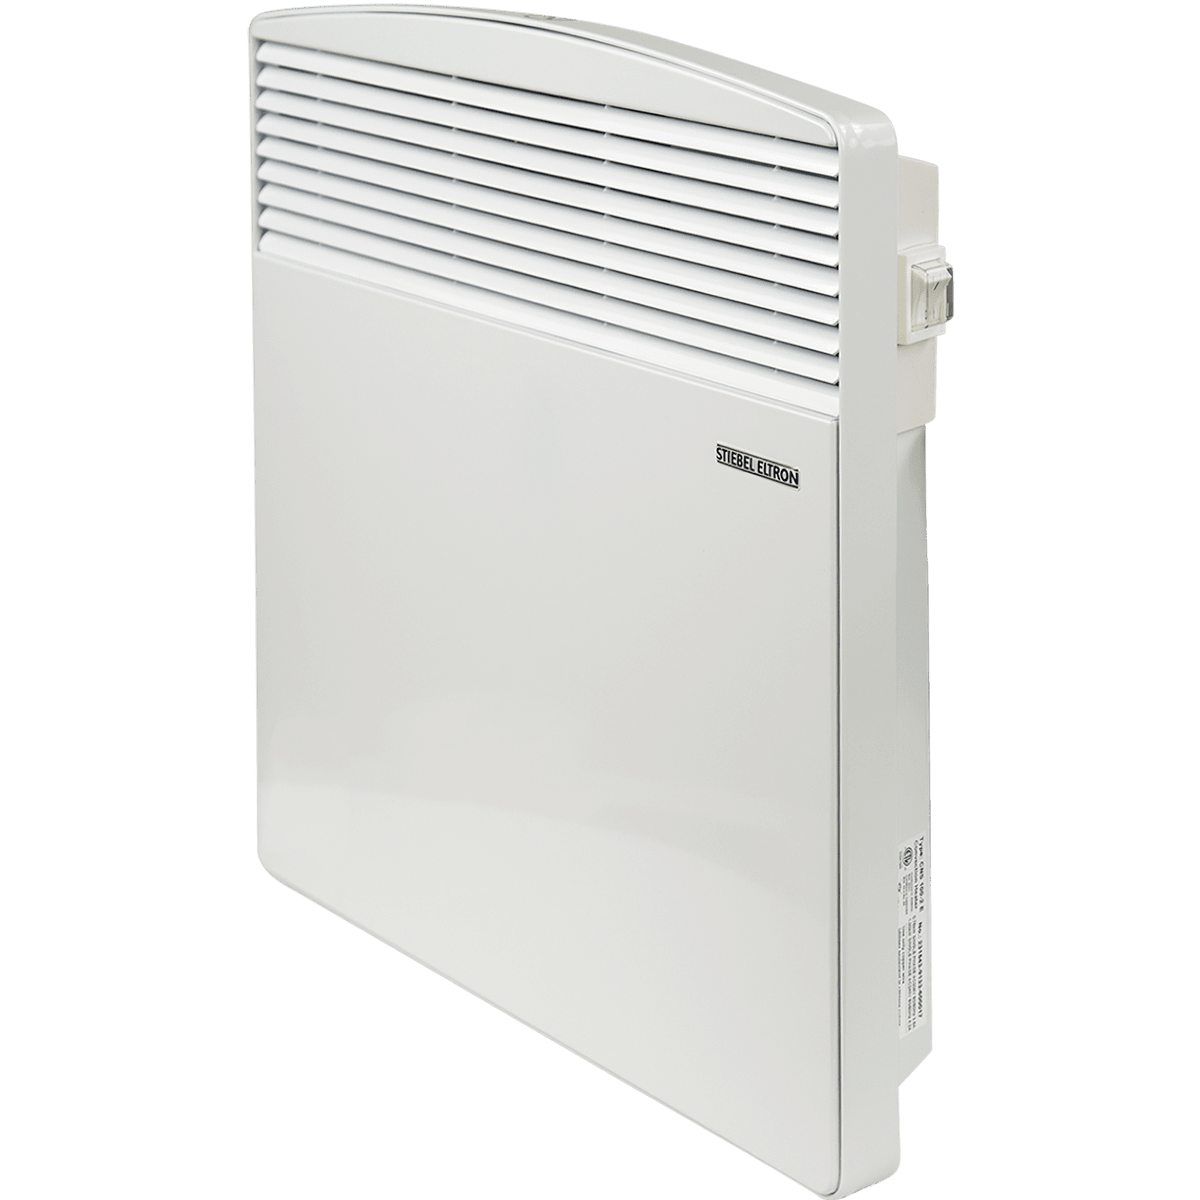 Stiebel Eltron CNS 120V Wall Mounted Convection Heater